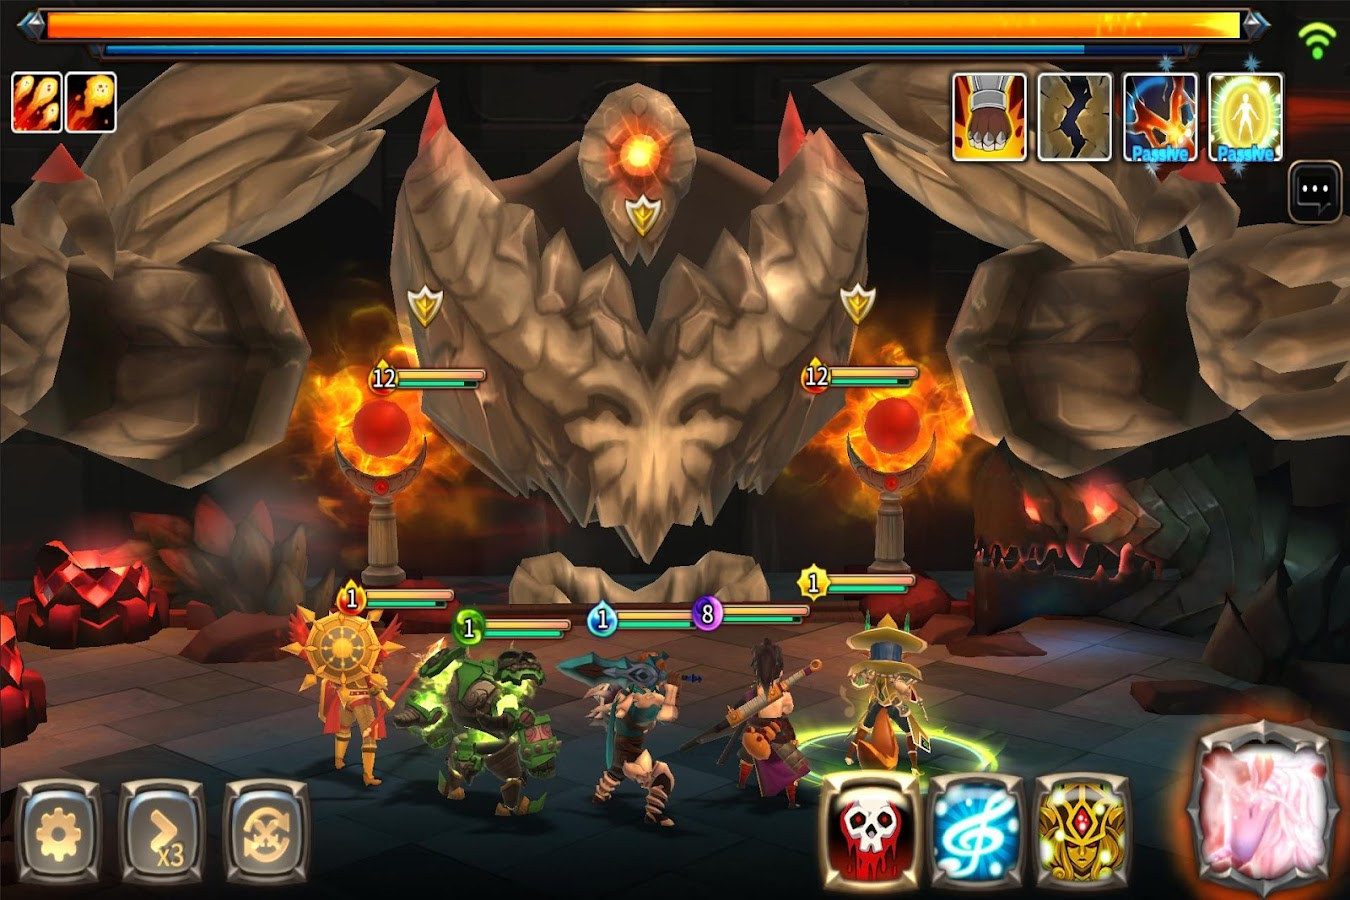 Once Heroes Screenshot 13